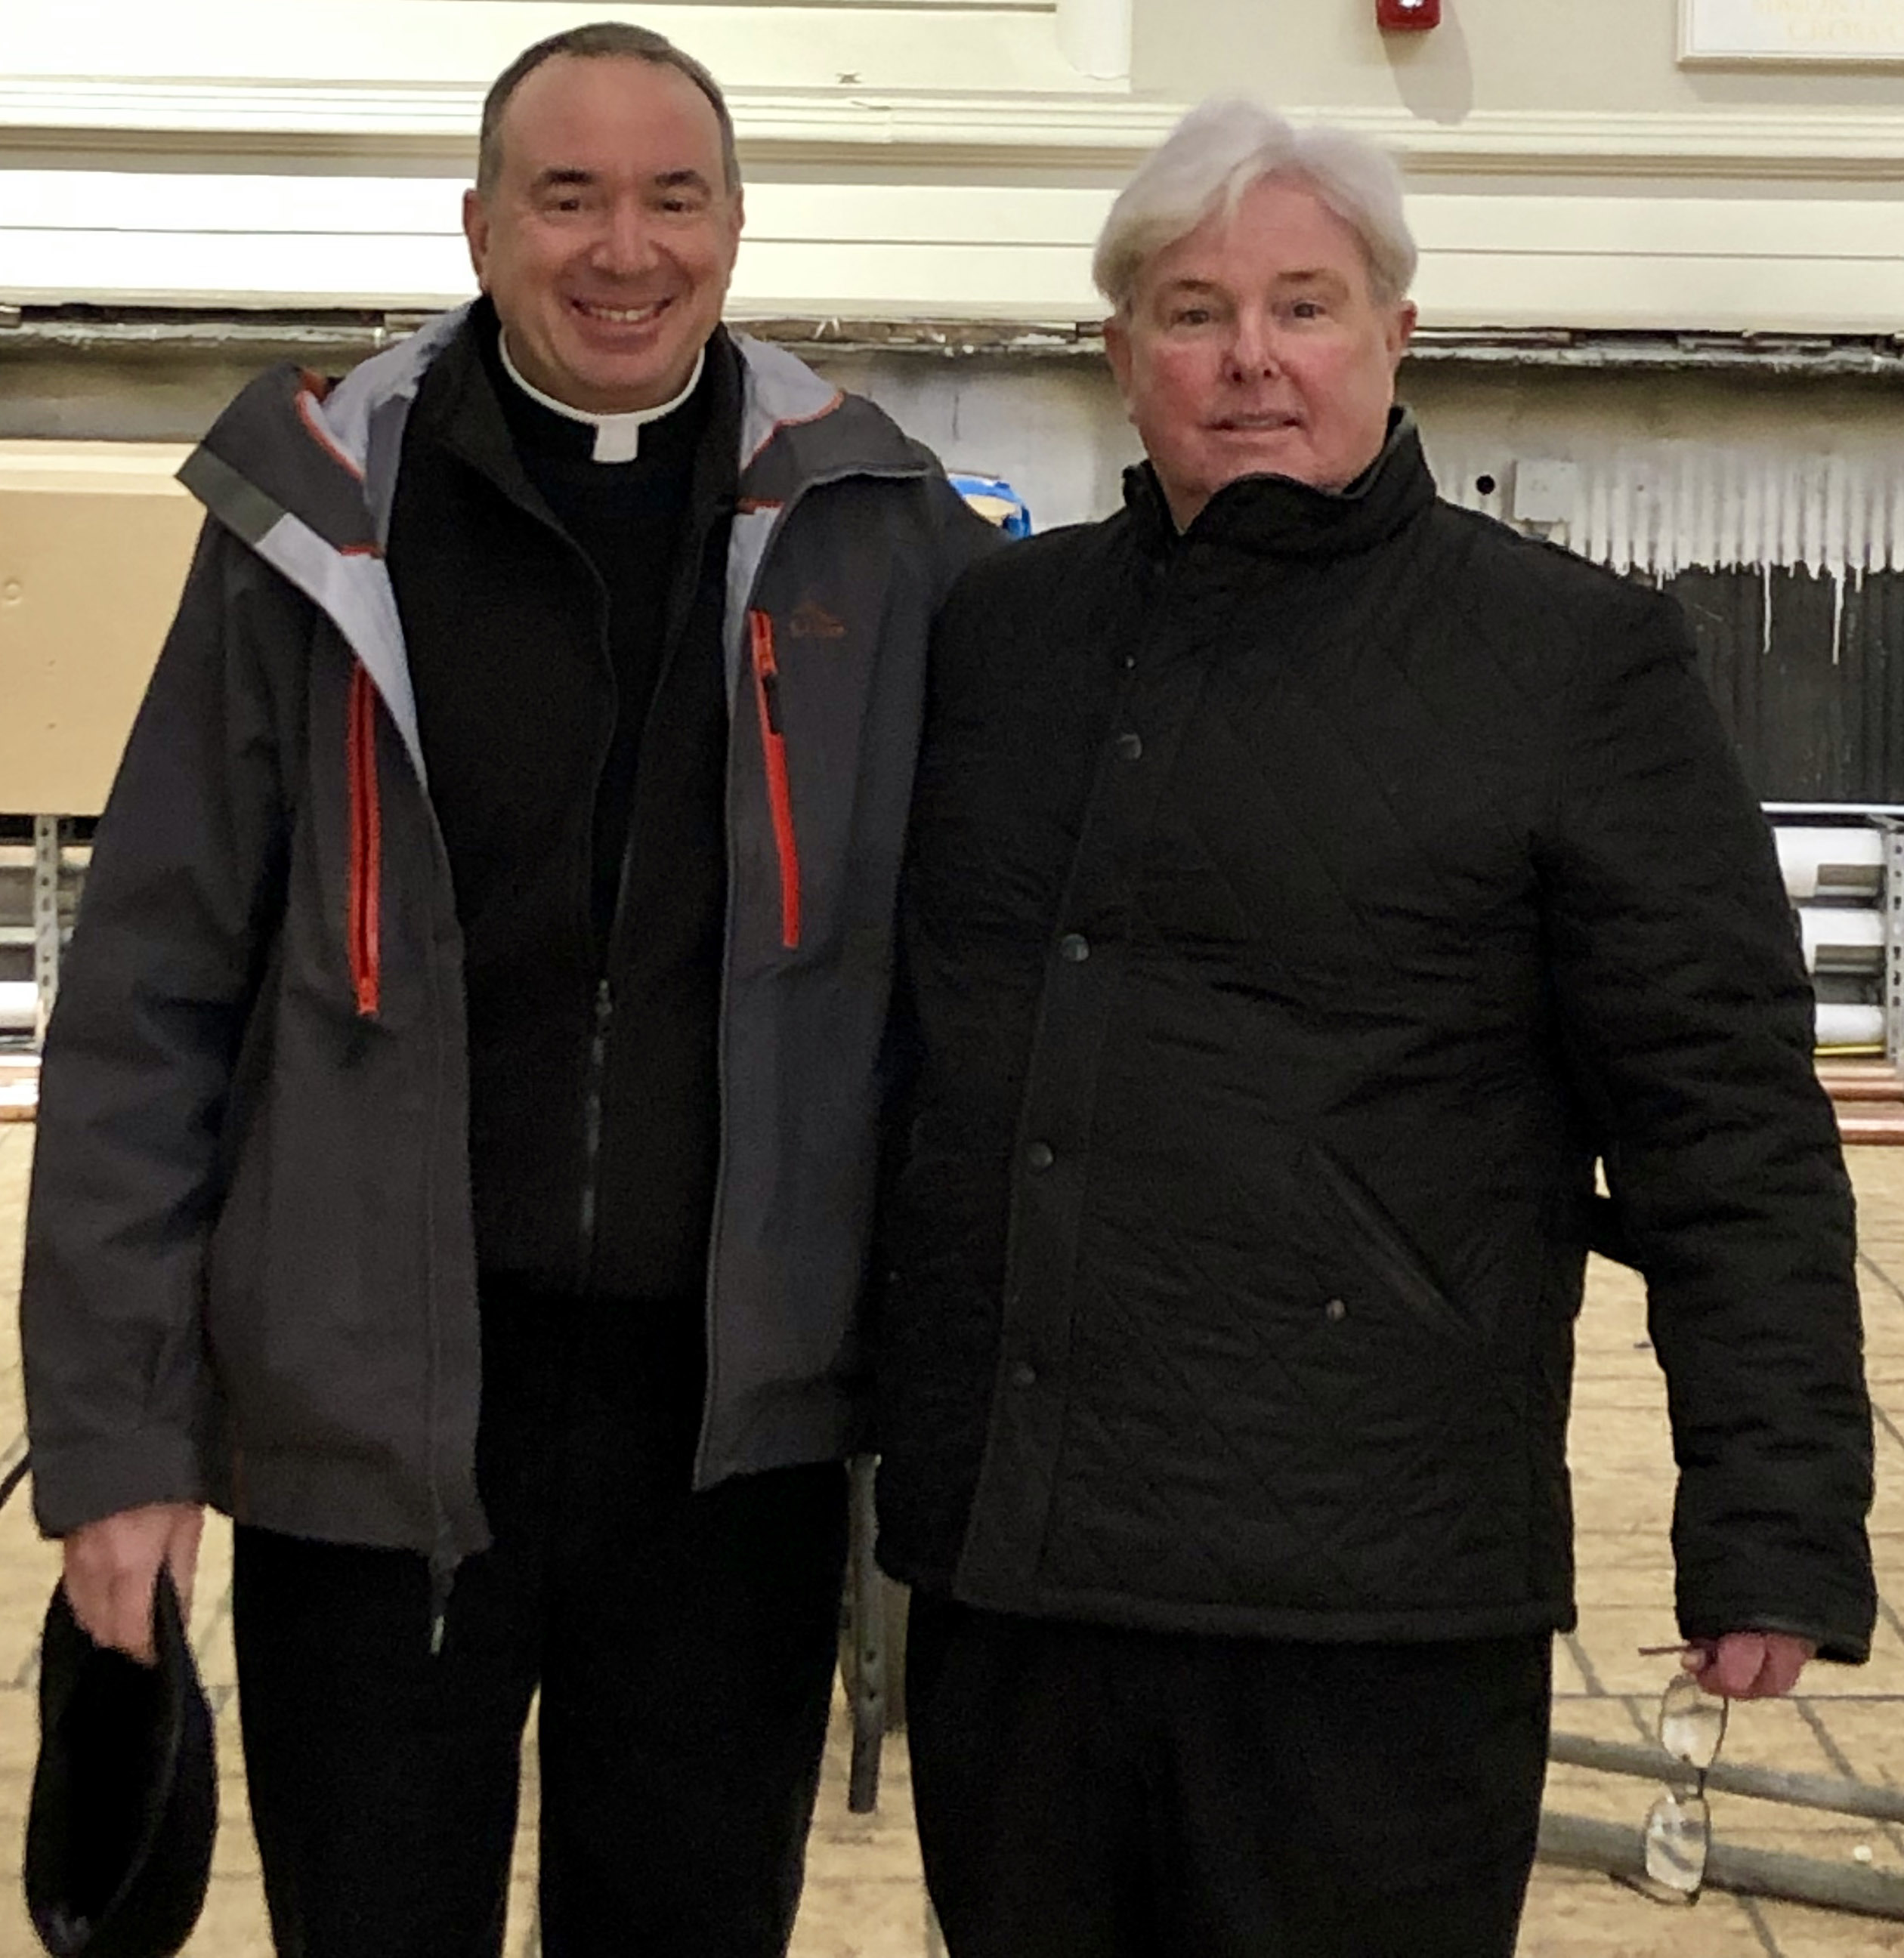 Work continues on restoring and upgrading the Cathedral under the direction of Fr Kevin O'Leary, Cathedral Rector.  Fr O'Leary gave tour of the extensive and much needed project on Wednesday Dec 12